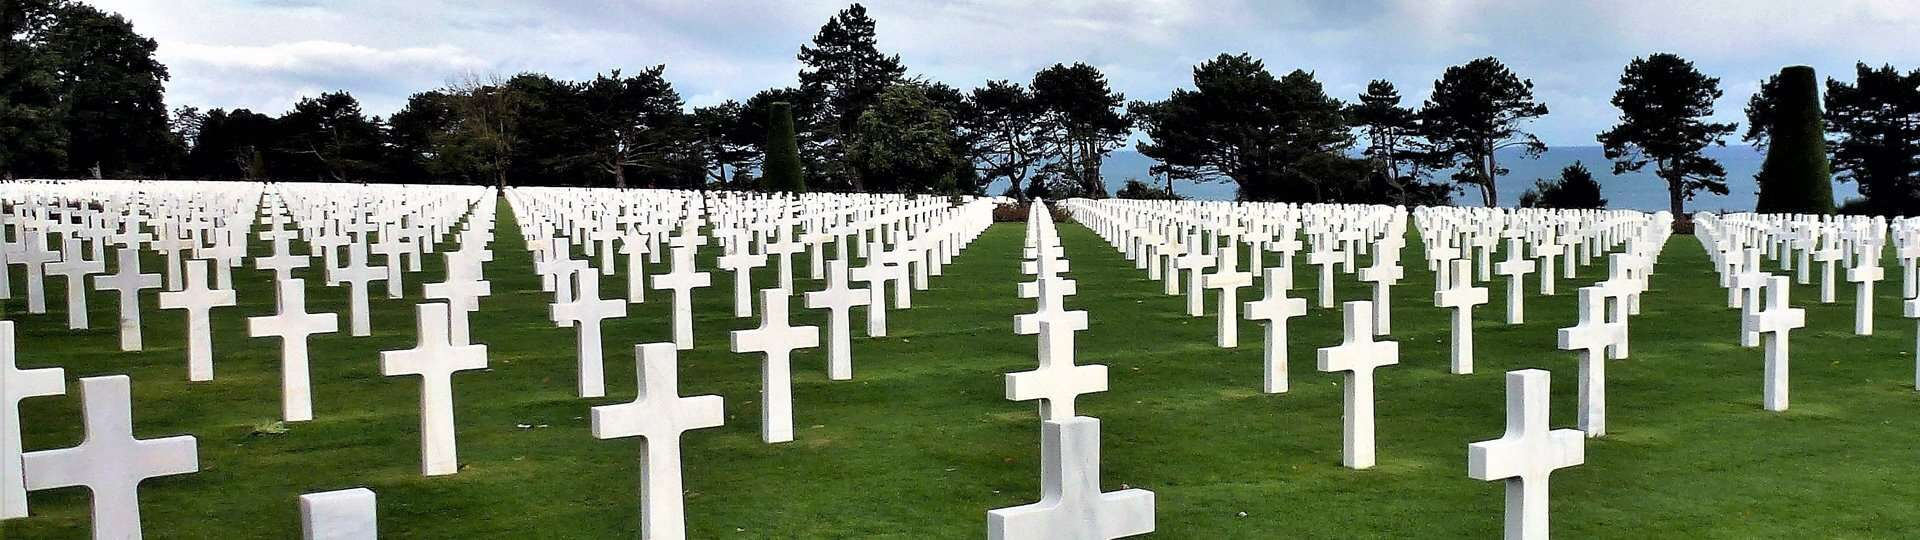 One of a number of cemeteries next to the D-Day Beaches in Normandy, France.